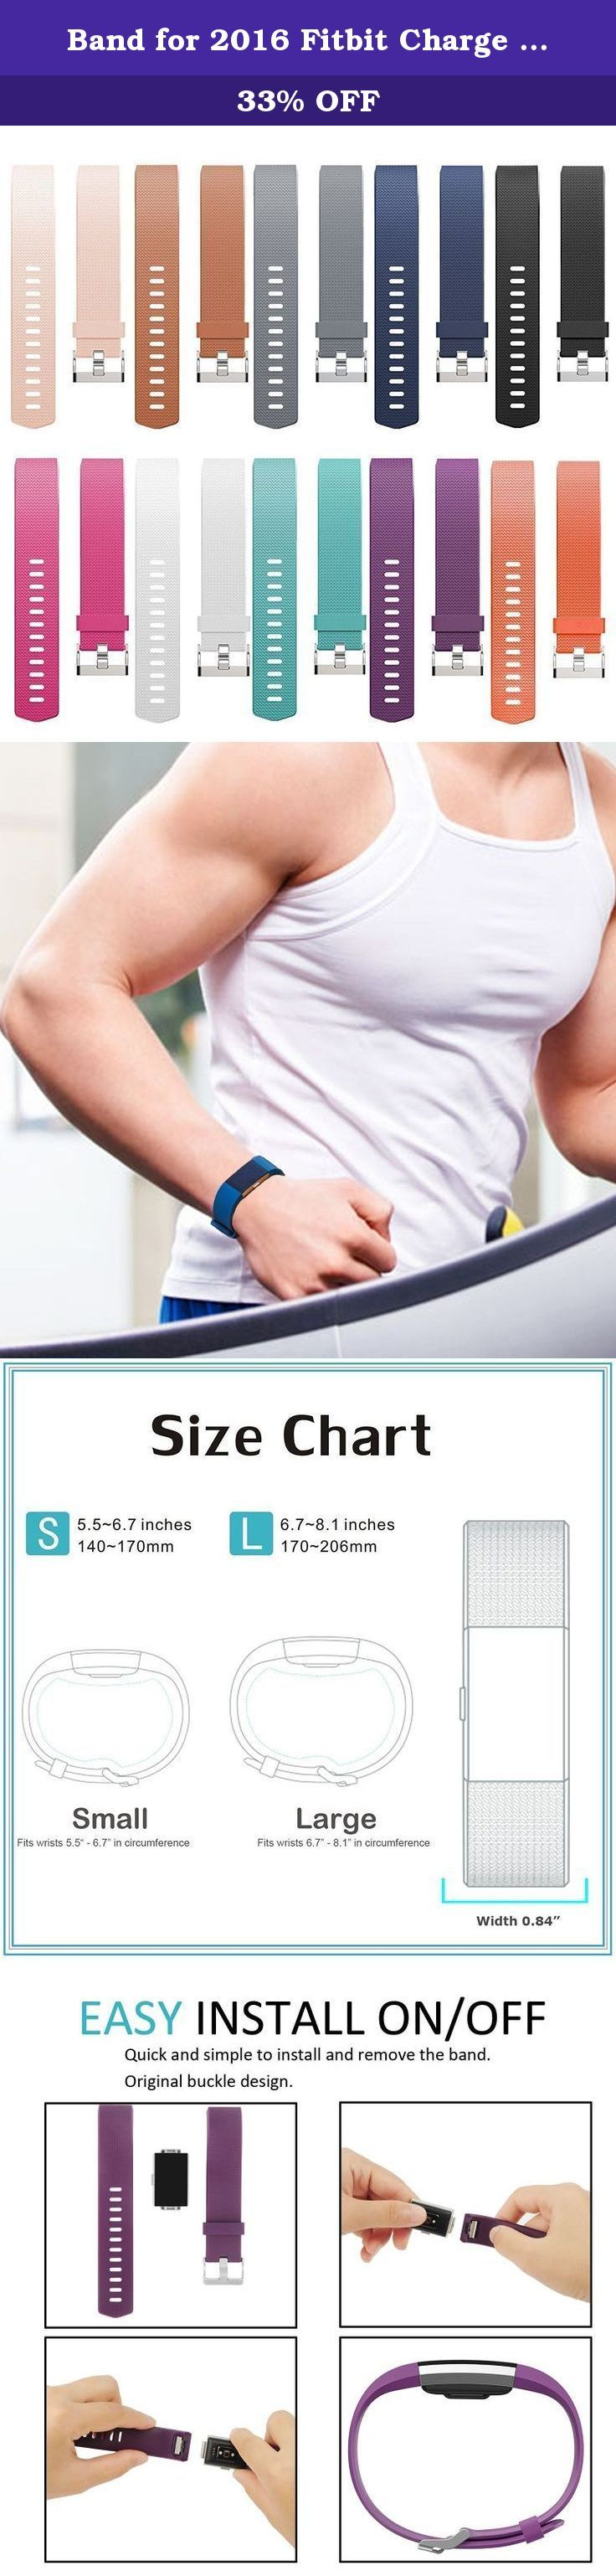 """Band for 2016 Fitbit Charge 2 HR, Accessories Replacement Sport Fitness Band for Fitbit Charge 2, Pack of 10 (Small( 5.5""""-6.7"""" )). Product Description This Fitbit Charge 2 accessories - Classic replacement band is beautiful, casual and comfortable This Charge 2 interchangeable bands are small and large size available, Size S Small 5.5""""-6.7"""", Size L Large 6.7""""-8.1"""" More color choices than original Charge 2 fitness wristband and makes your new Fitbit Charge 2 HR a new look Great Fitbit…"""